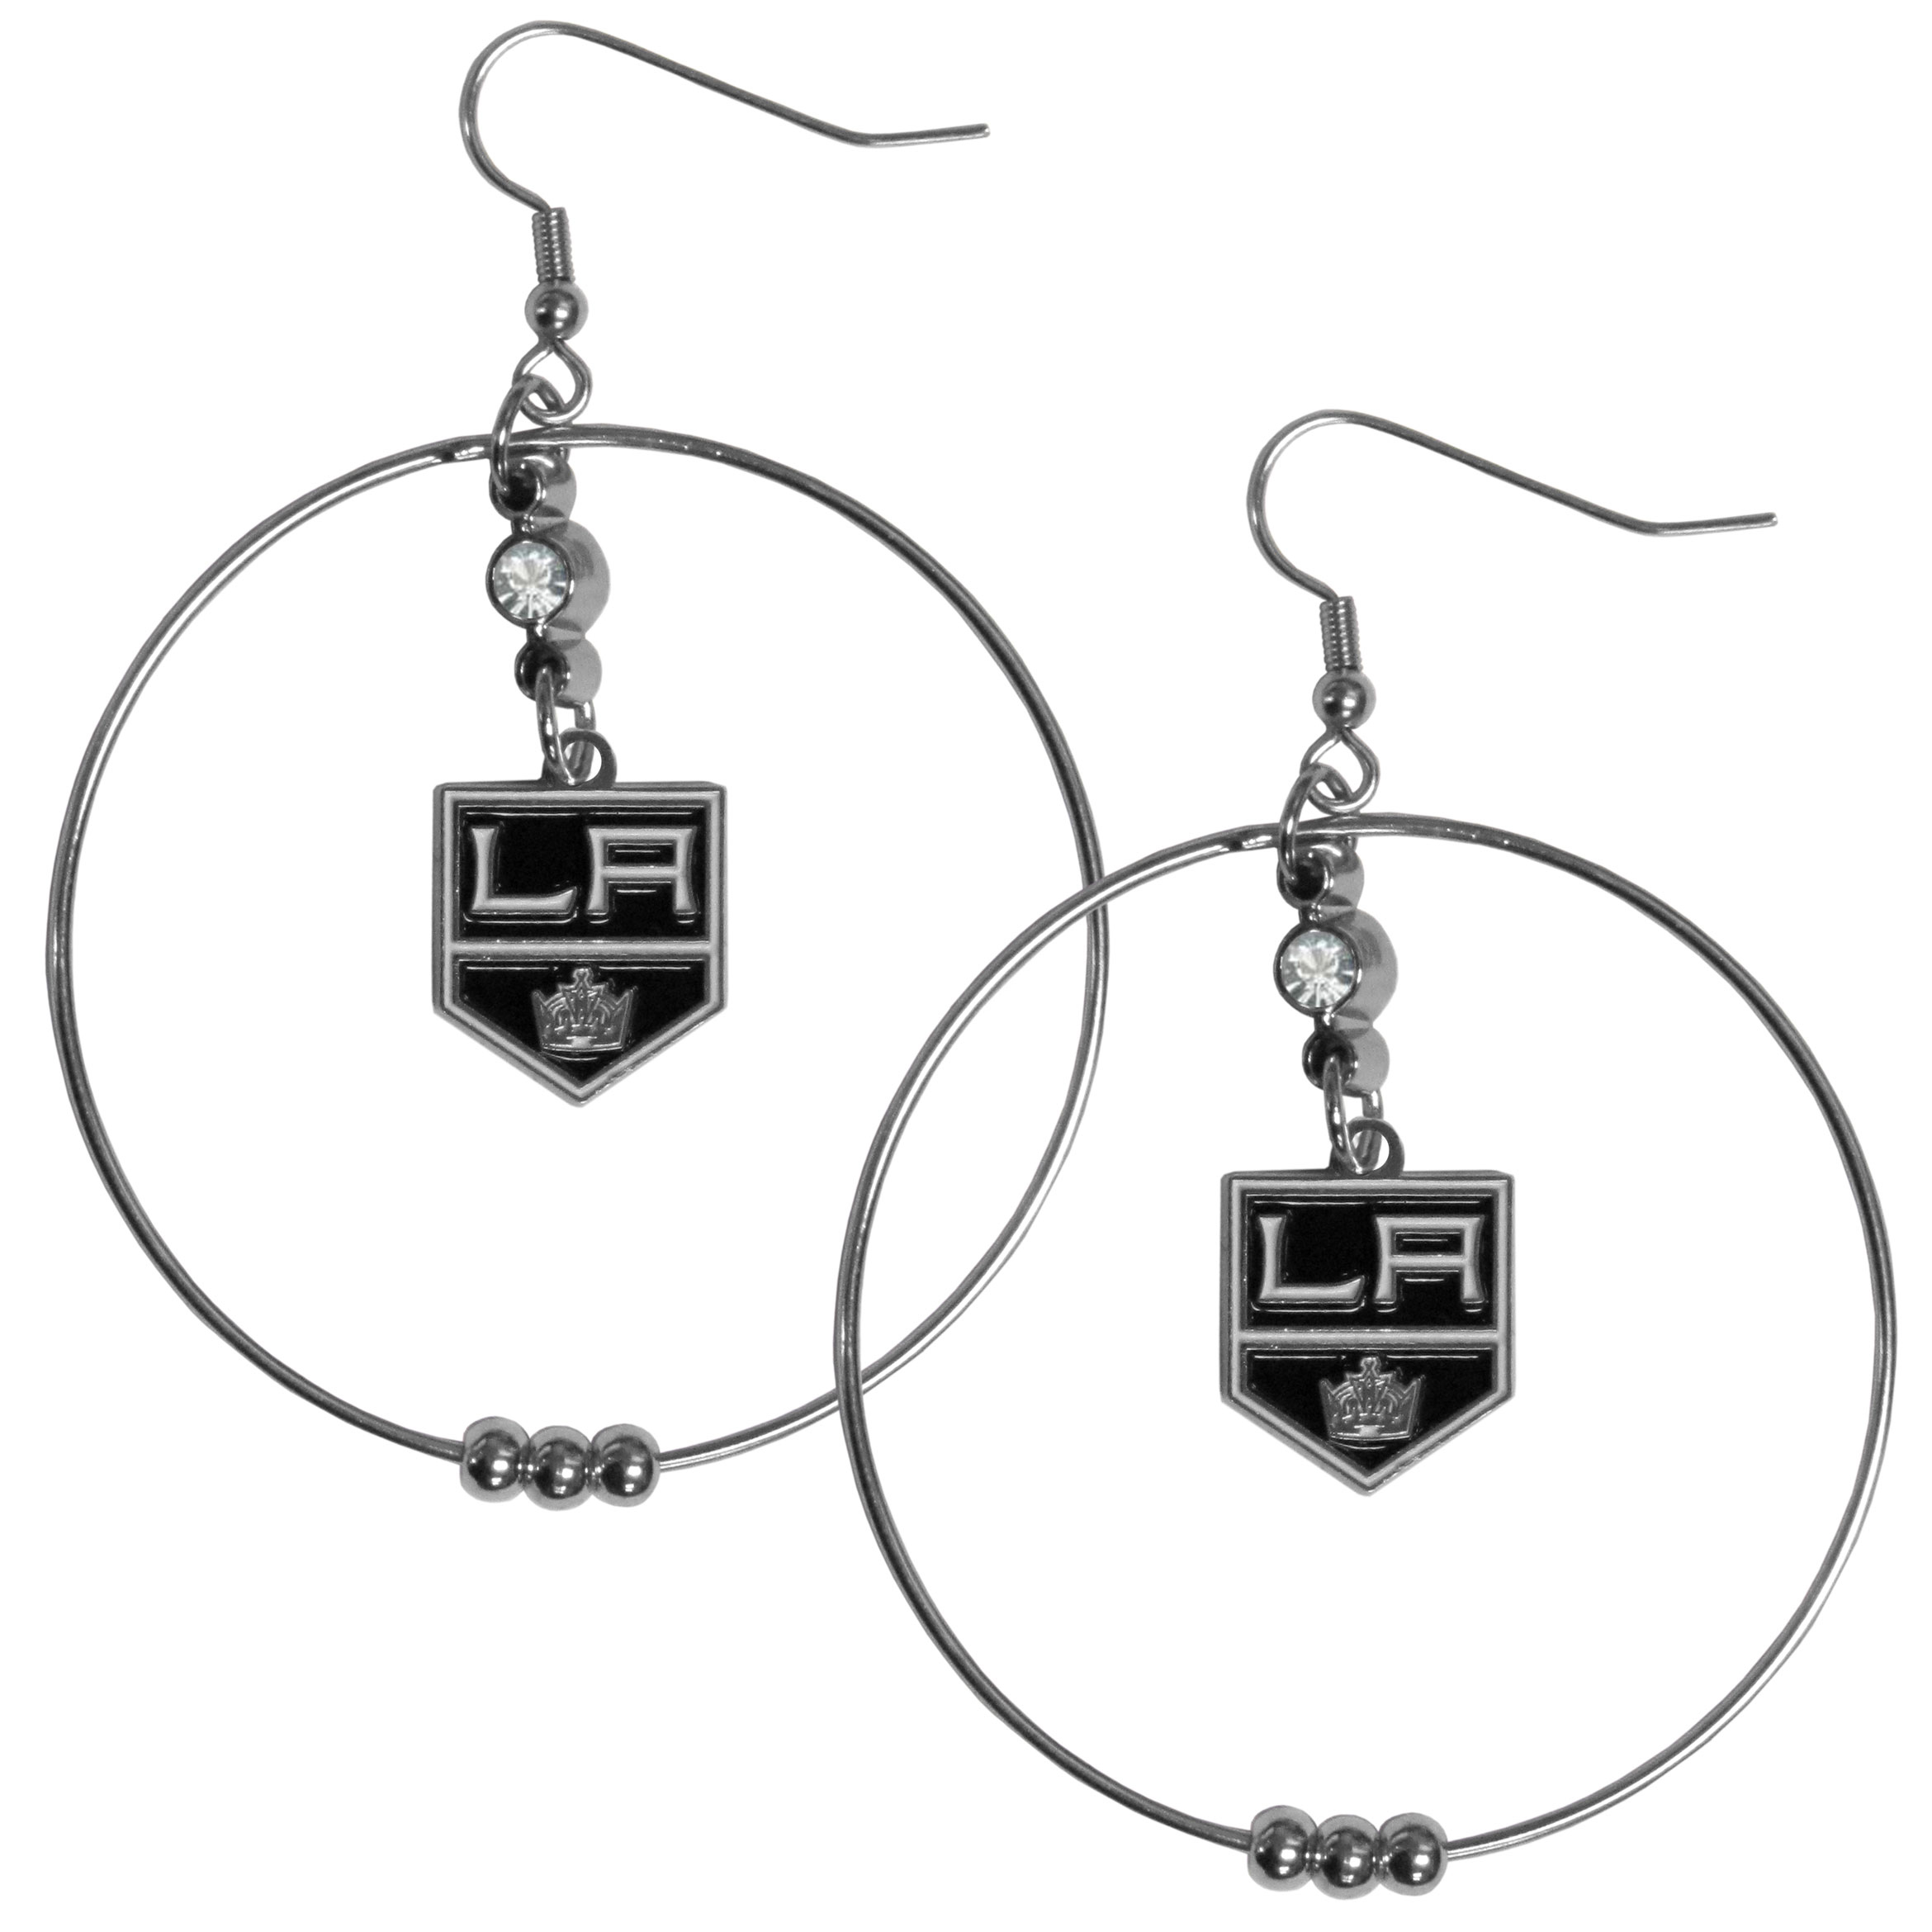 Los Angeles Kings® 2 Inch Hoop Earrings - Our large hoop earrings have a fully cast and enameled Los Angeles Kings® charm with enameled detail and a high polish nickel free chrome finish and rhinestone access. Hypoallergenic fishhook posts.